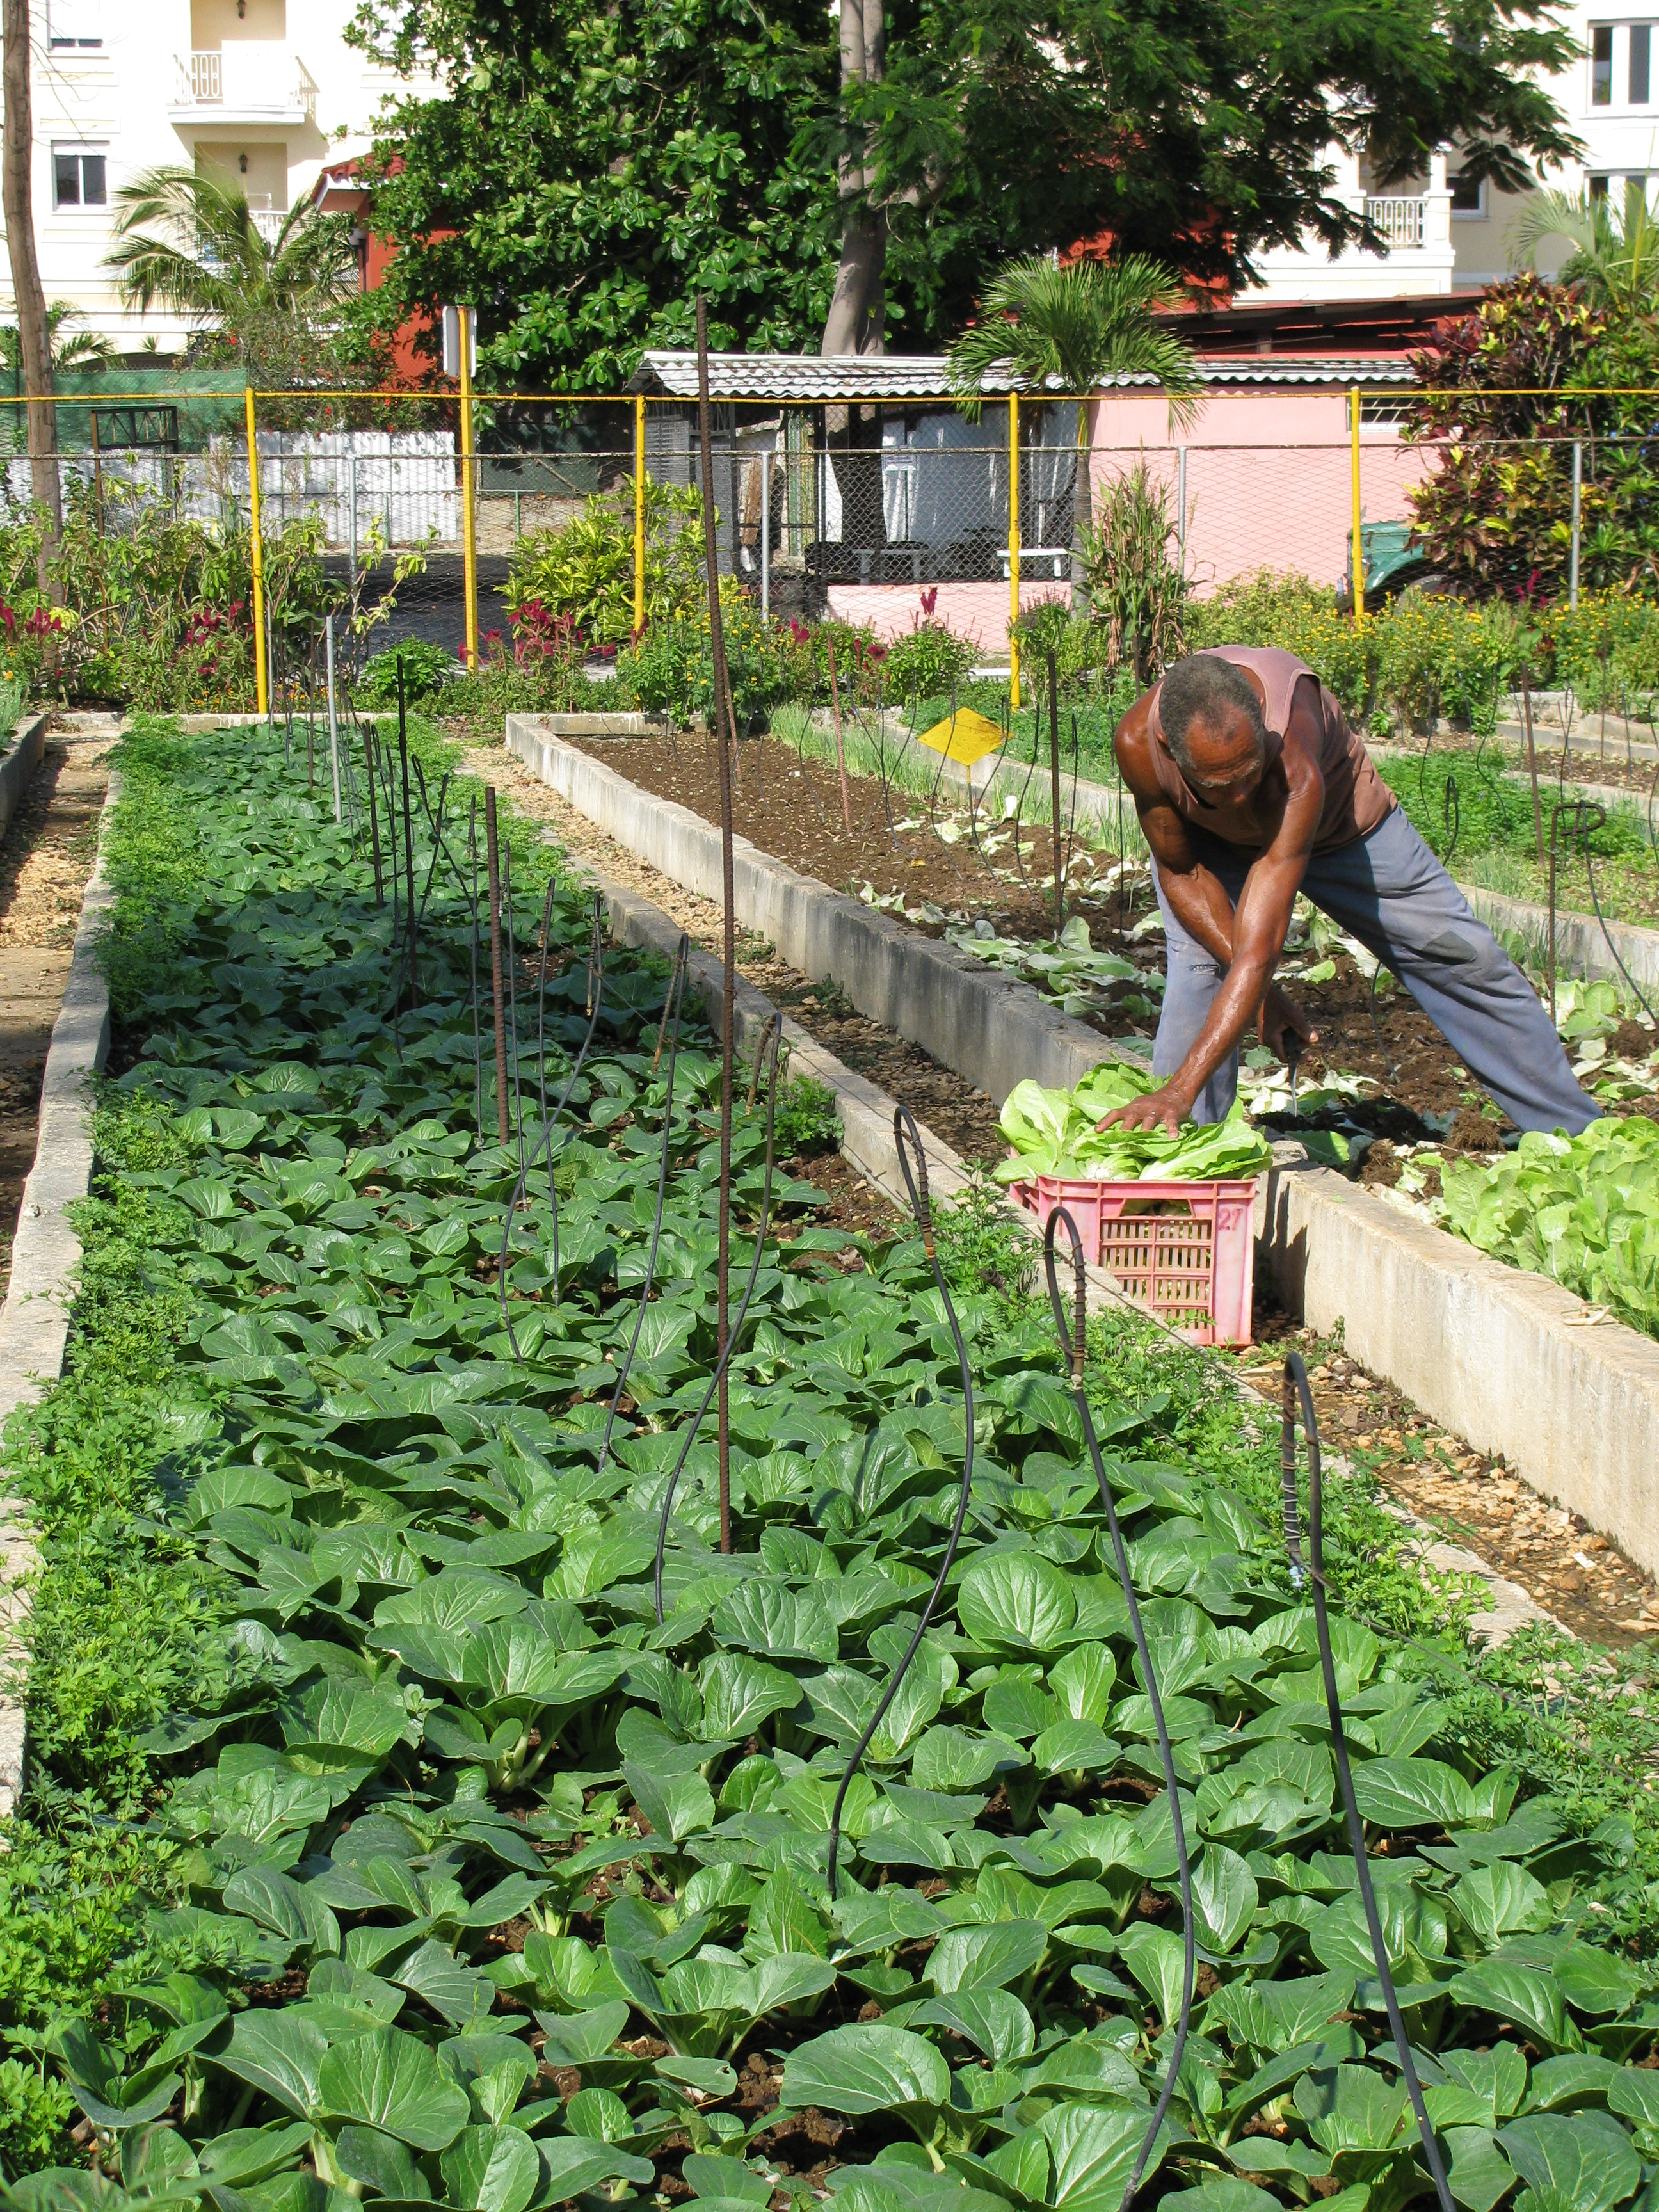 urban agriculture Academic, political, and urban communities boasting environmental, eco- nomic,  educational, and health benefits, urban agriculture has the poten- tial to make.